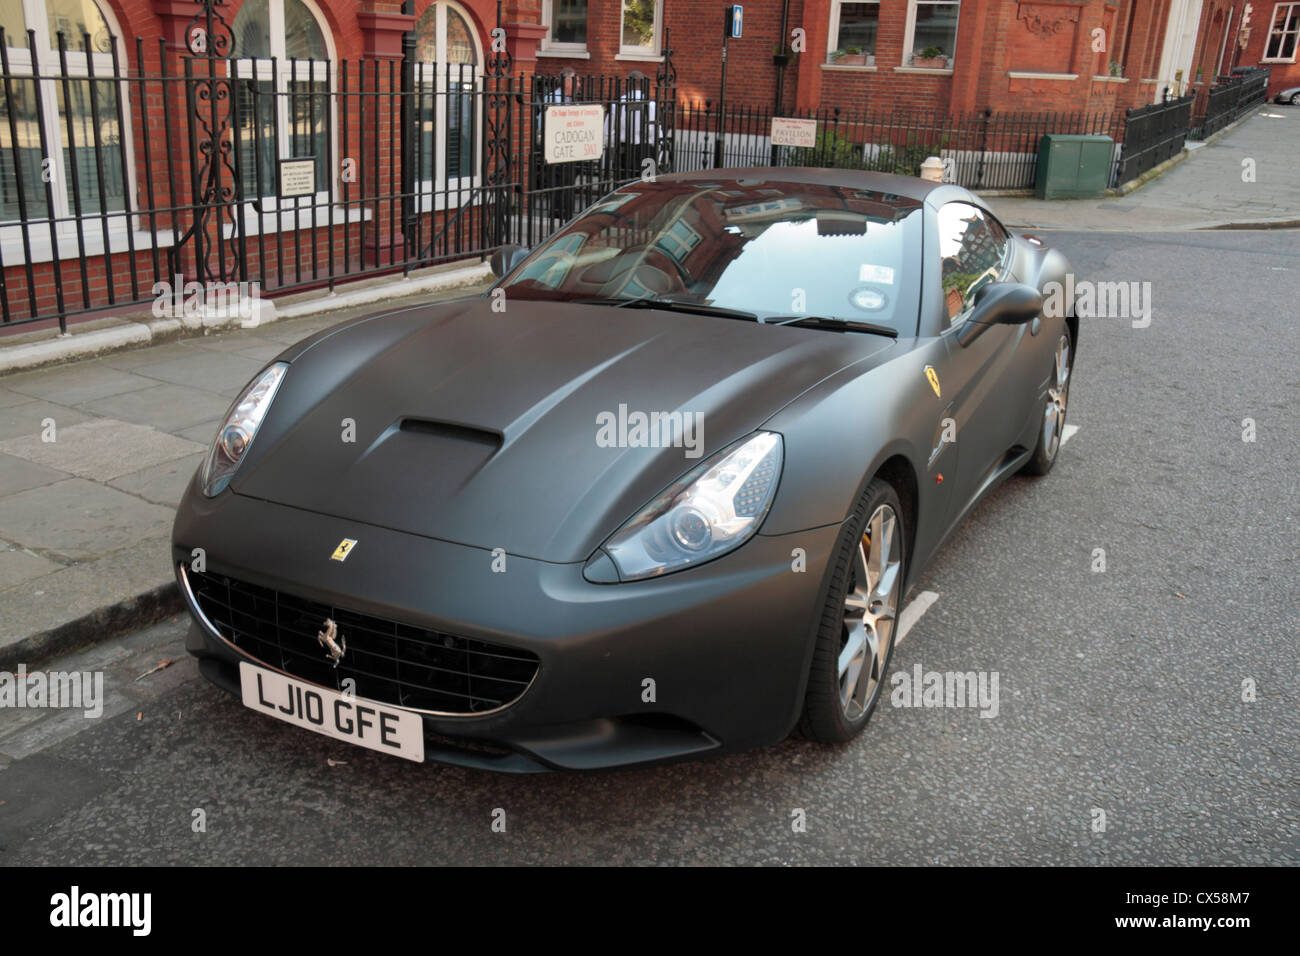 A stunning matte black Ferrari California (2010 license plate